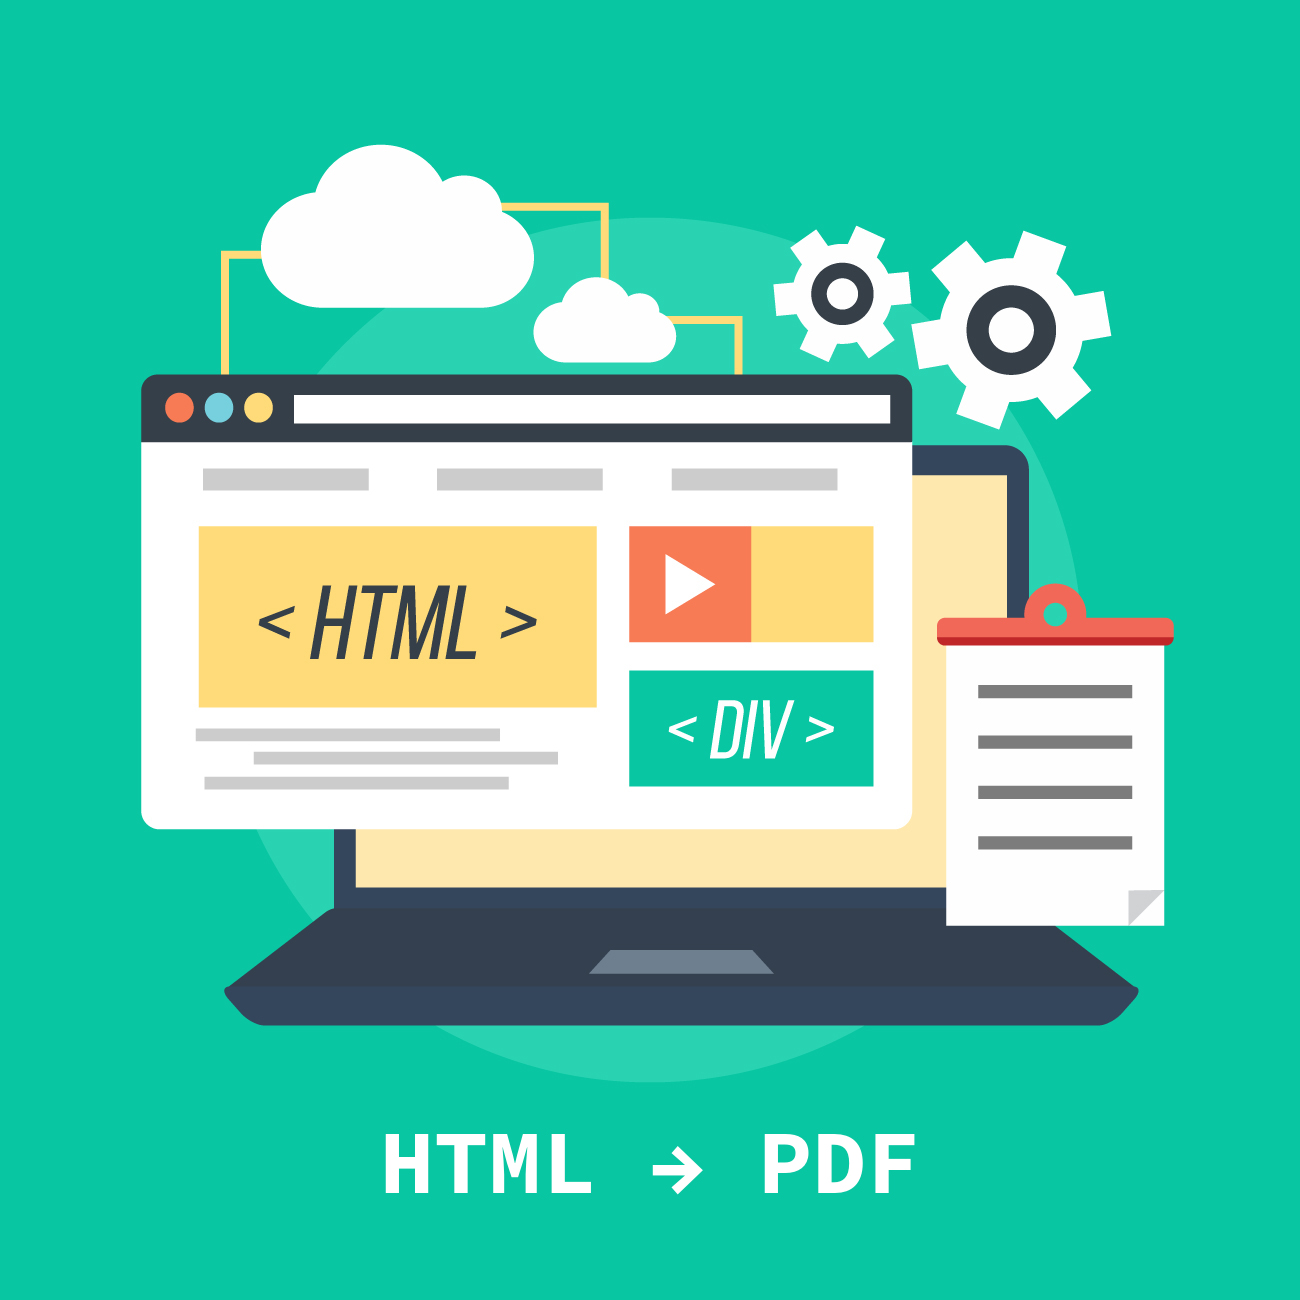 convert html file to pdf with wkhtmltopdf